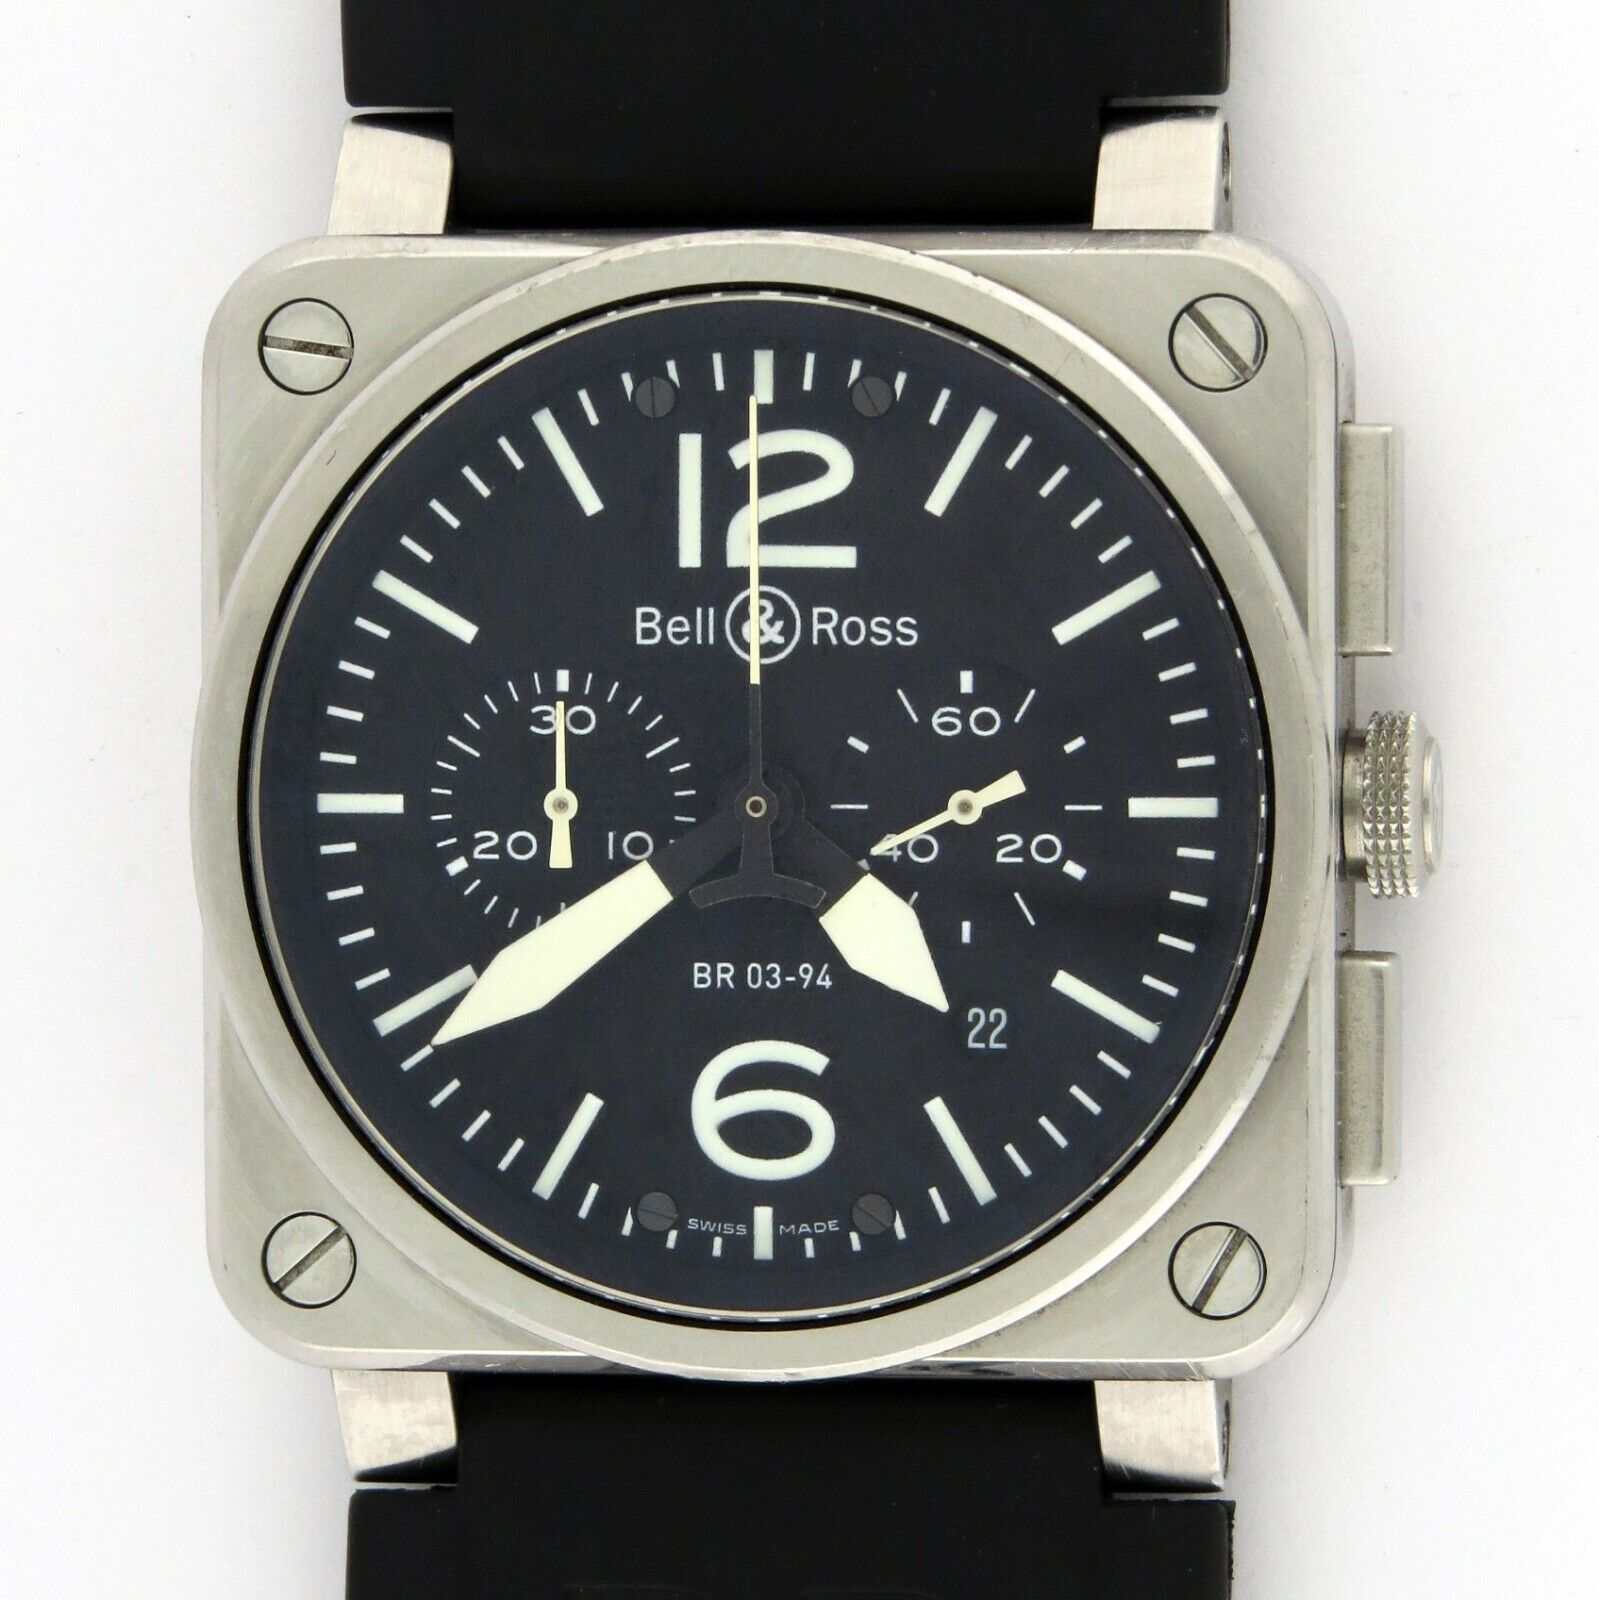 Bell & Ross BR03-94 Automatic Chronograph Instrument Mens Watch 42mm Box/Card - watch picture 1